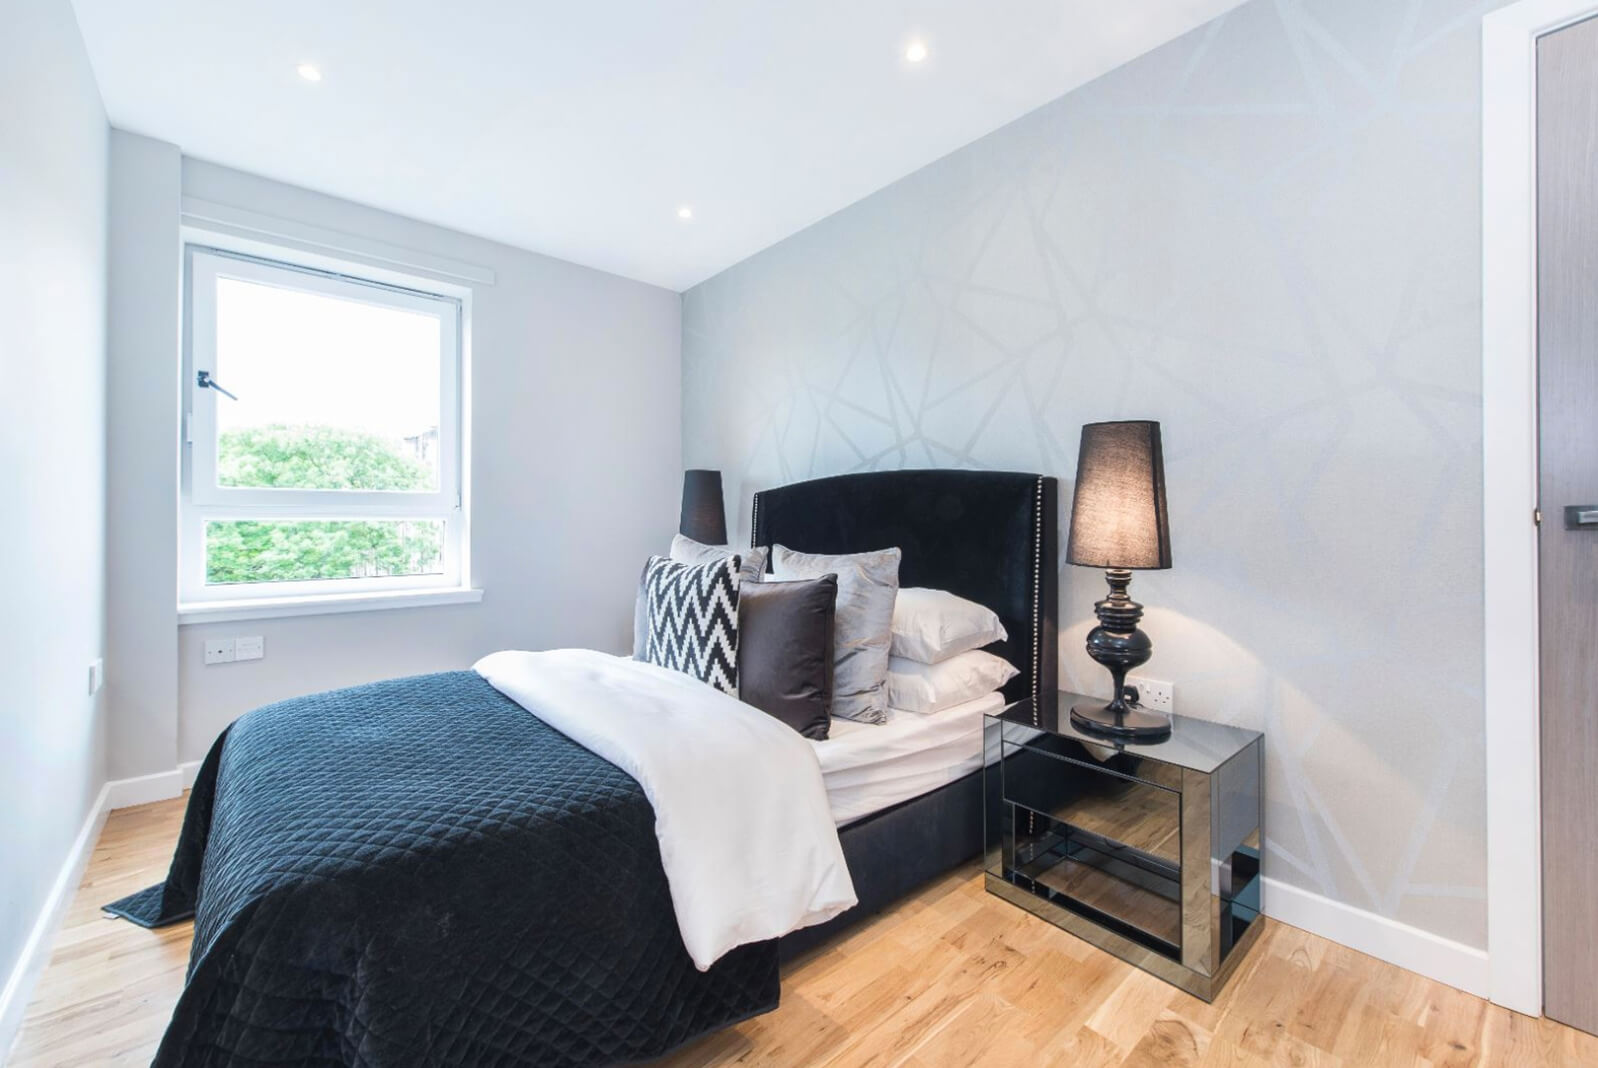 Dressed double bed with bedside tables either side. Modern geometric wallpaper on one wall and wooden flooring. Single window.